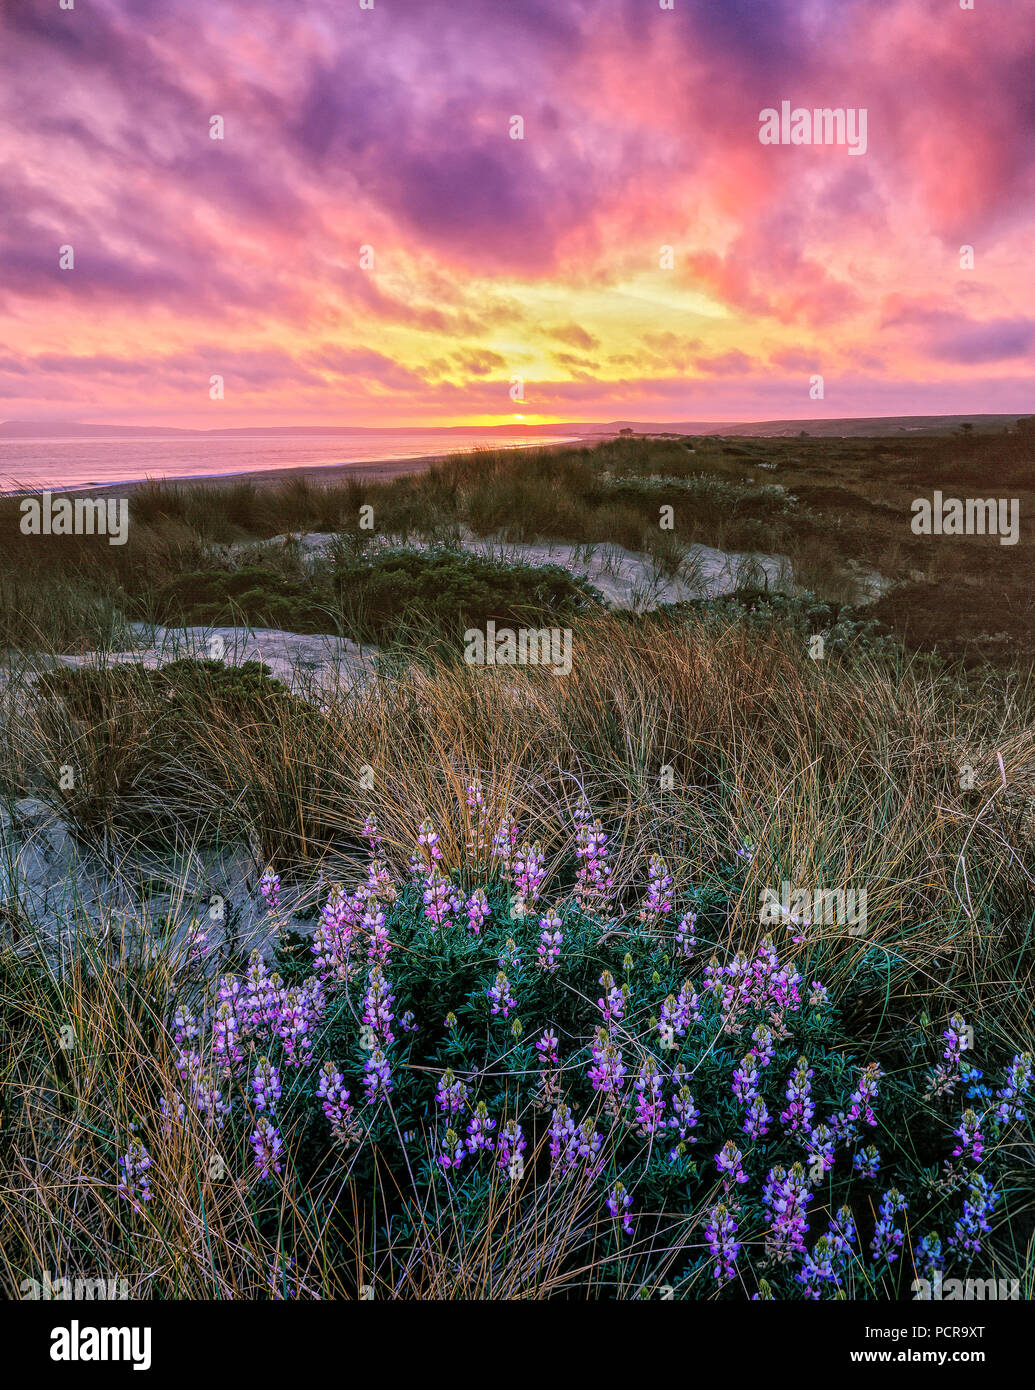 Sonnenuntergang, Lupine, Limantour Strand, Point Reyes National Seashore, Kalifornien, Marin County, Kalifornien Stockbild